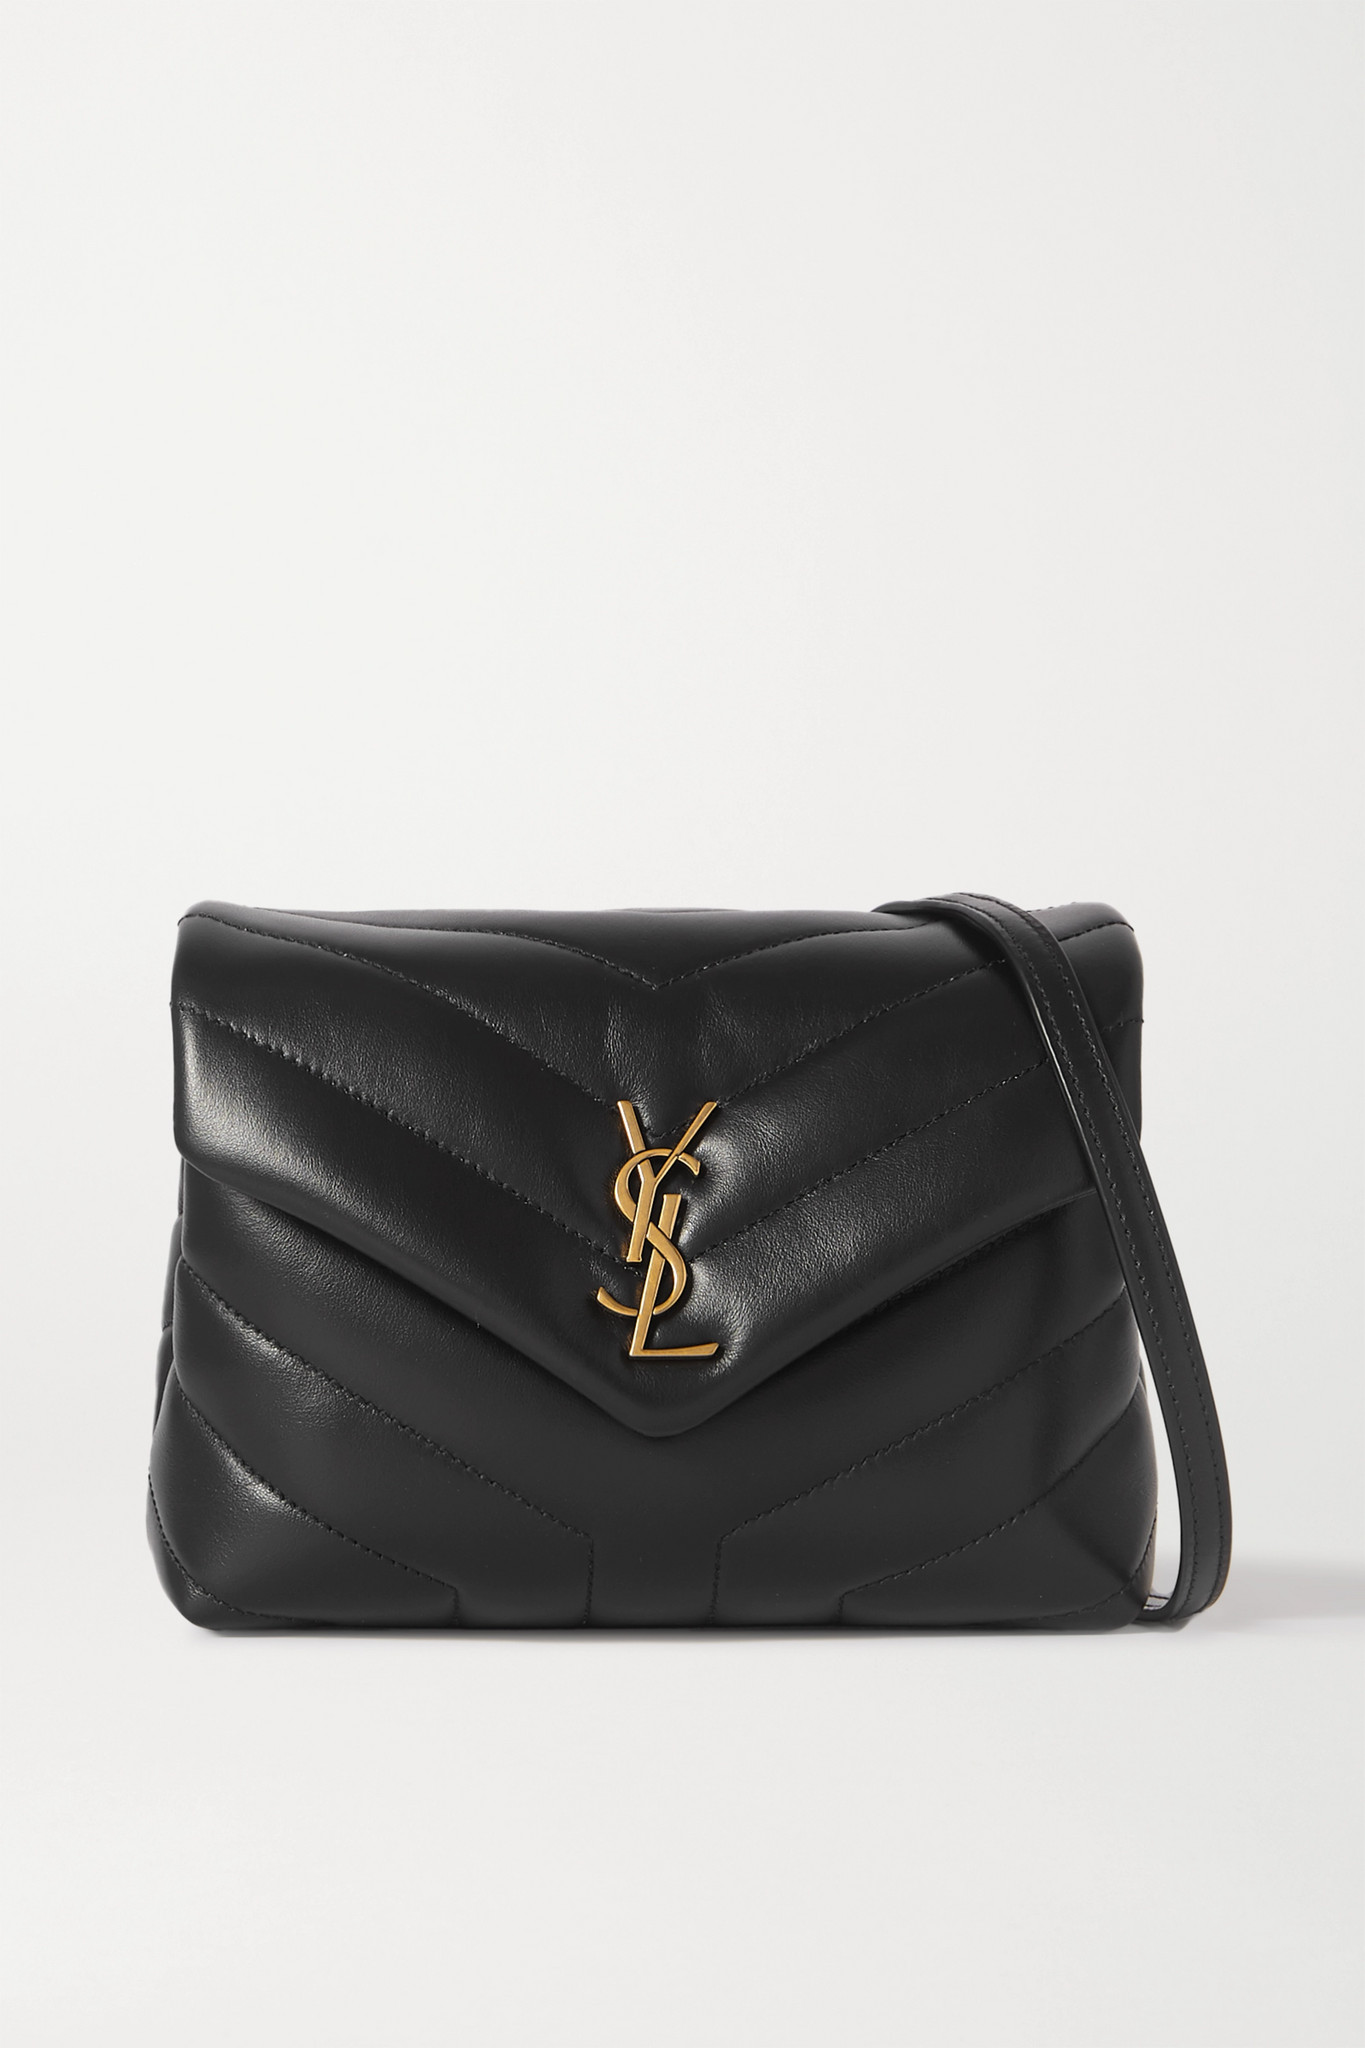 SAINT LAURENT - Loulou Toy Quilted Leather Shoulder Bag - Black - one size